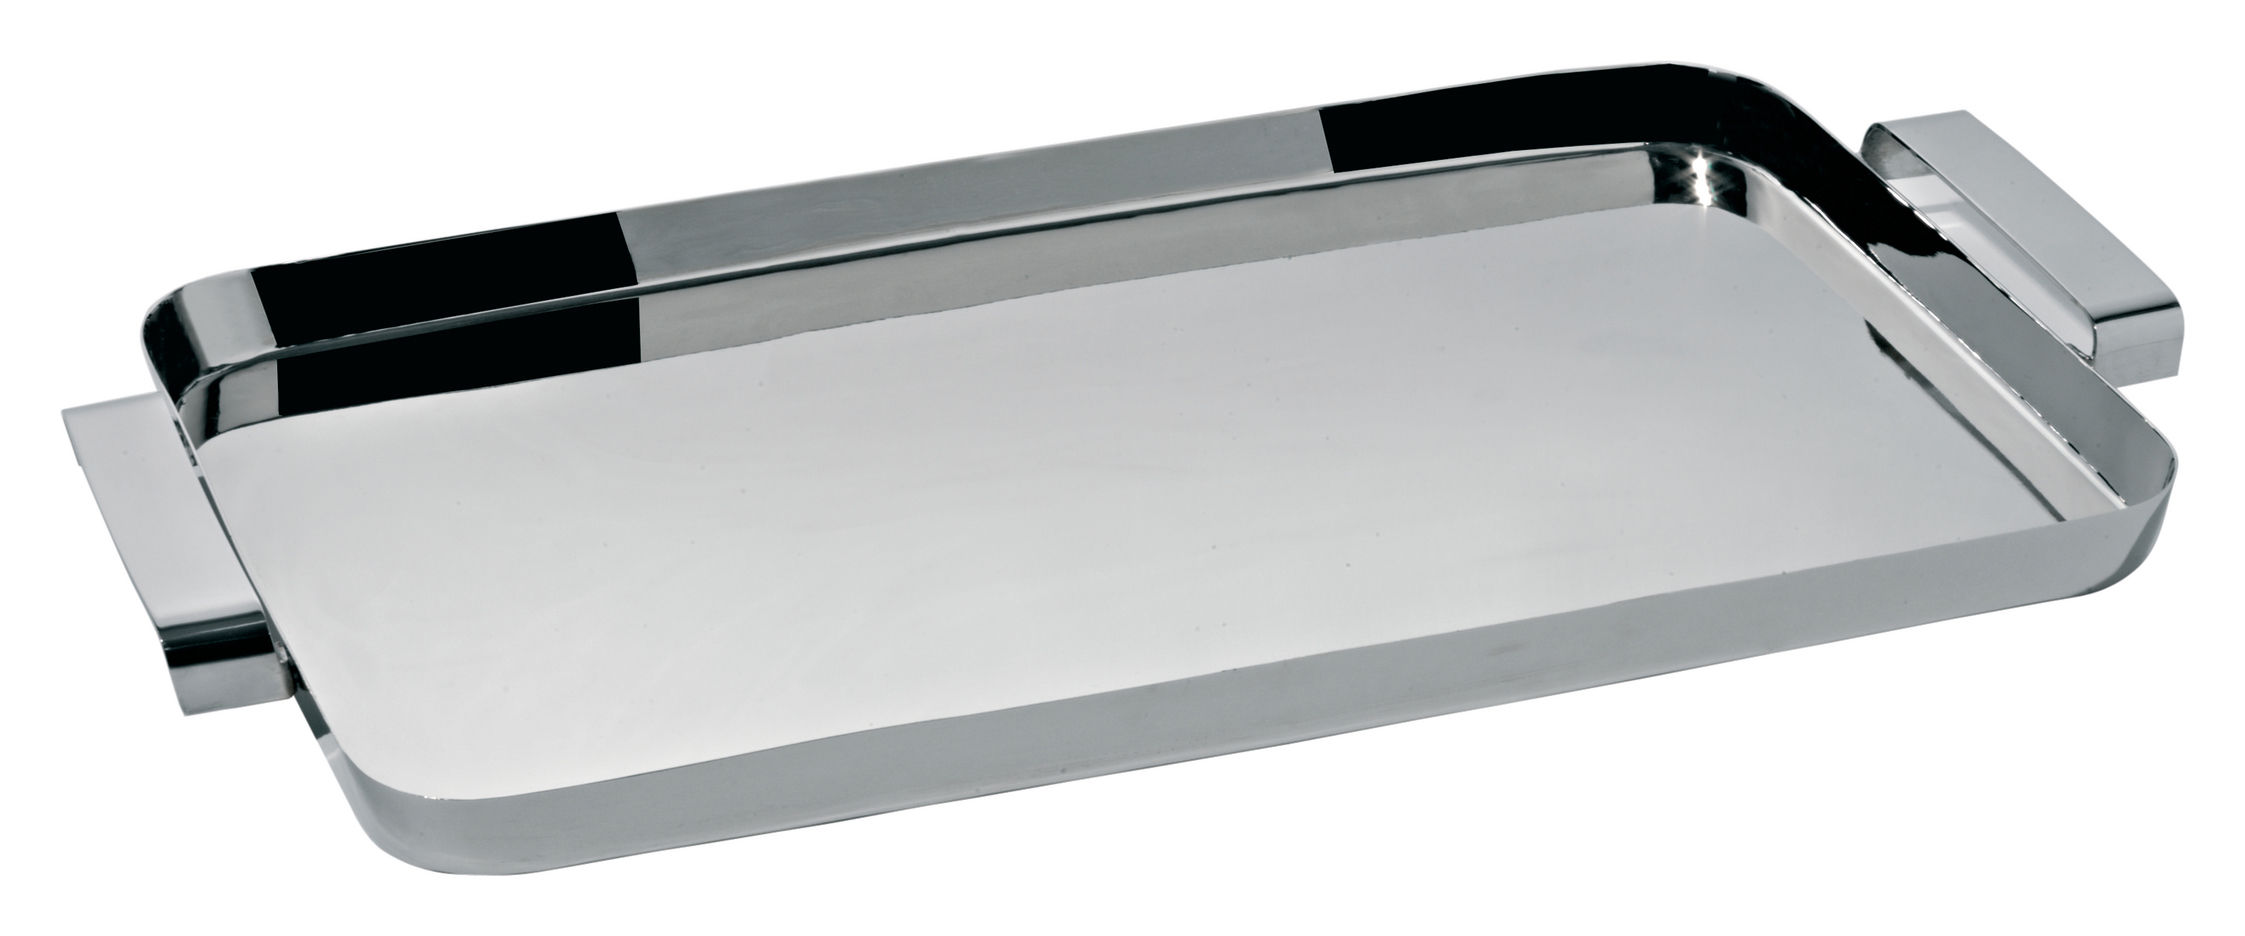 Tableware - Trays - Tau Tray by Alessi - Steel - Stainless steel